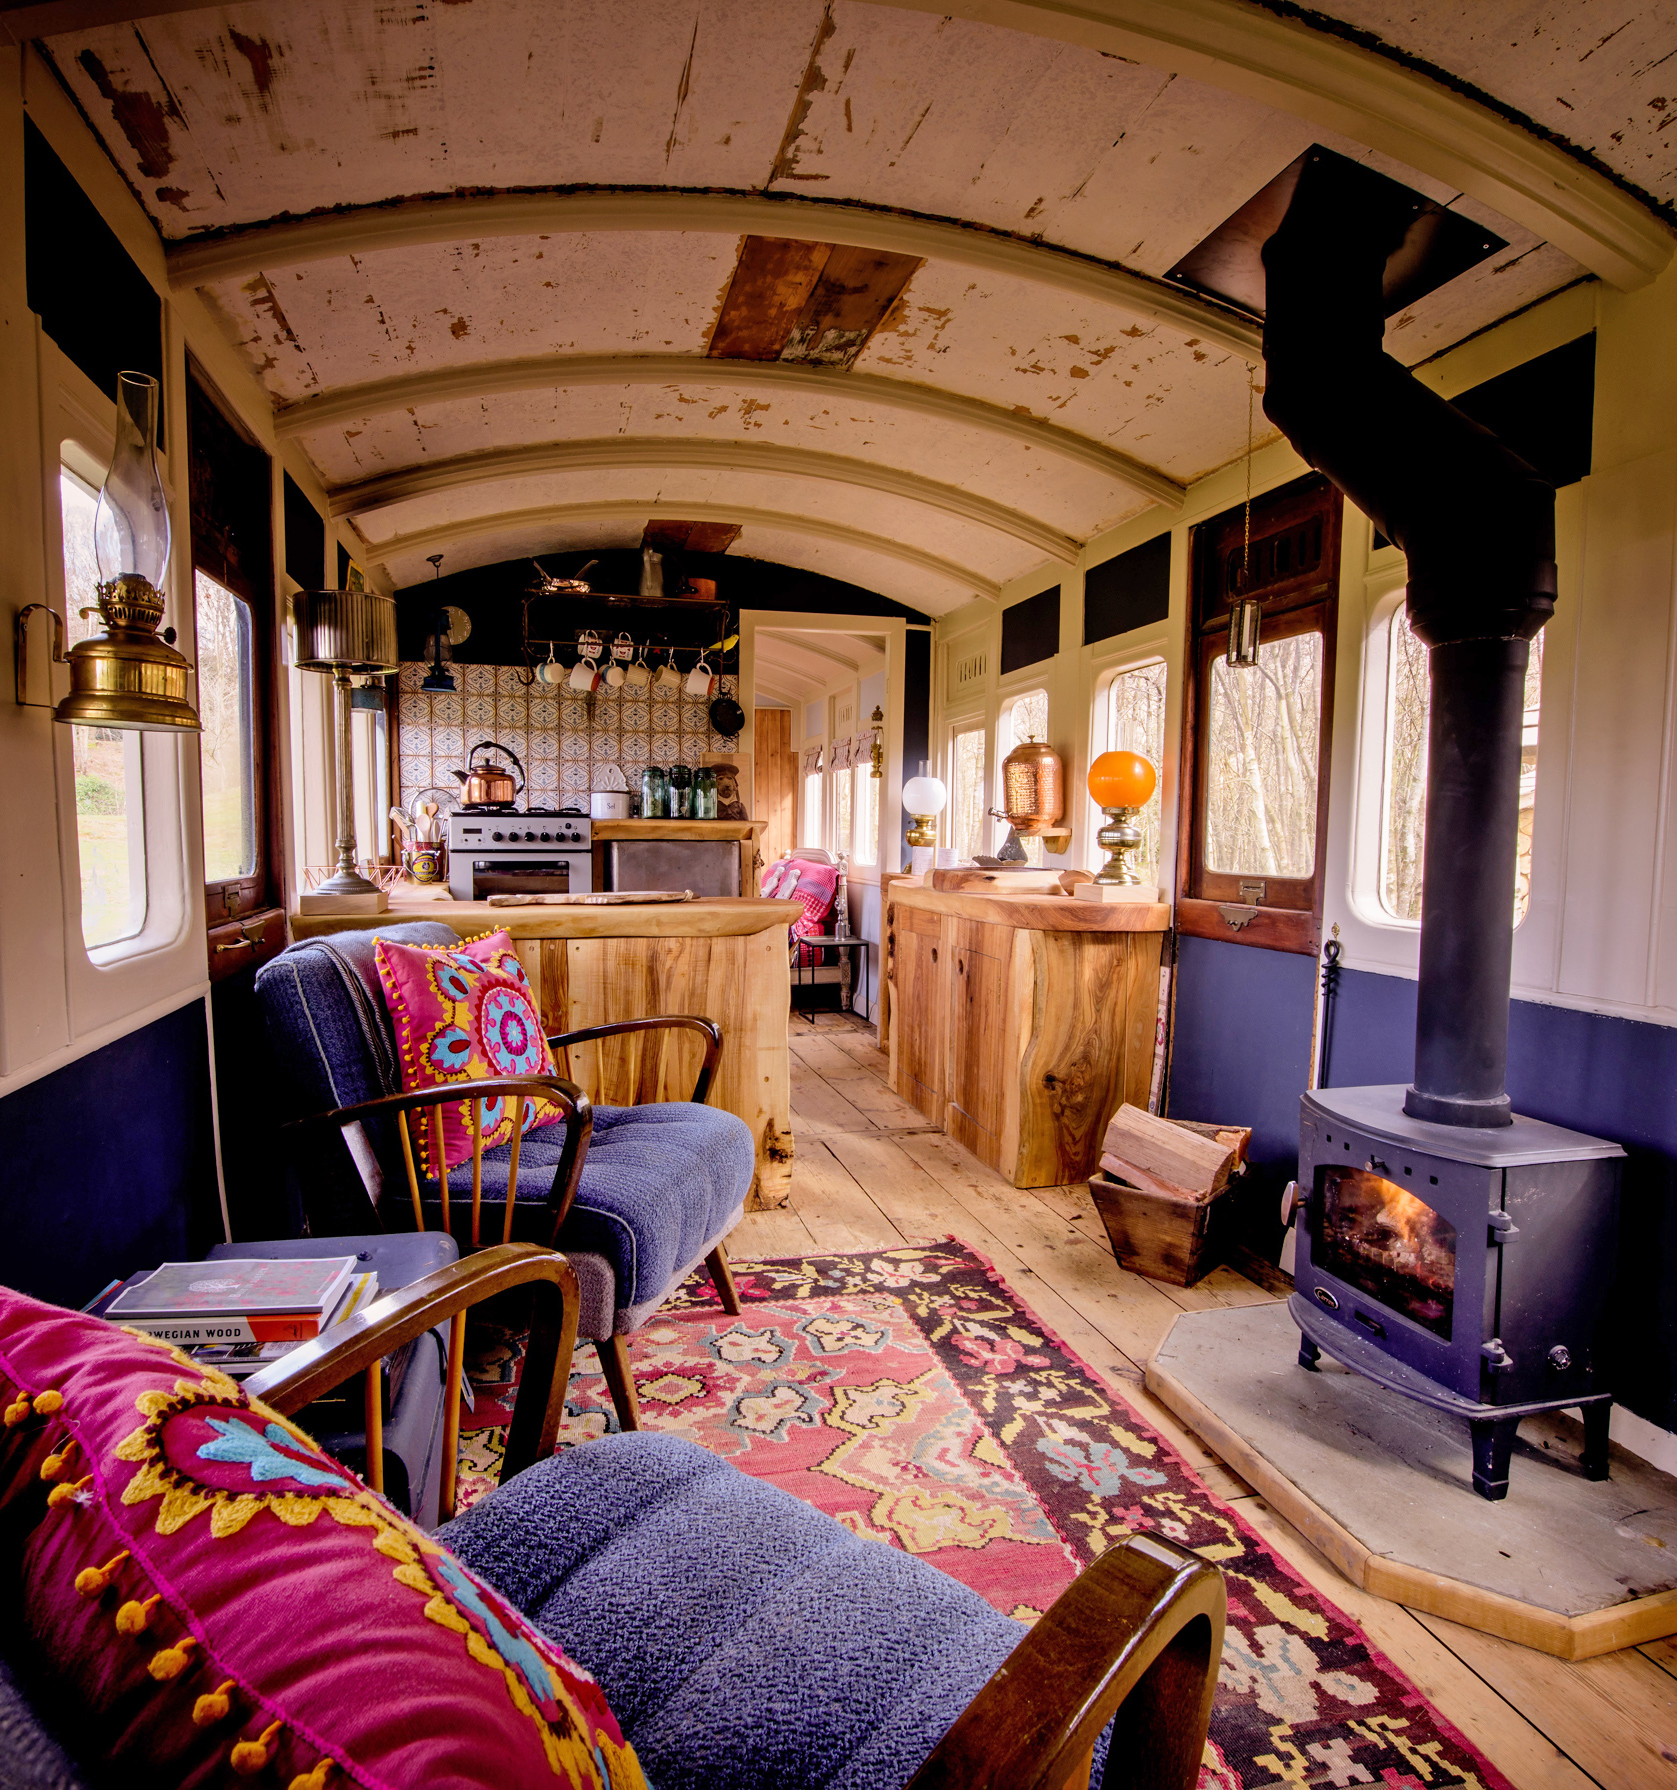 Quirky Sussex Carriage - cosy interior